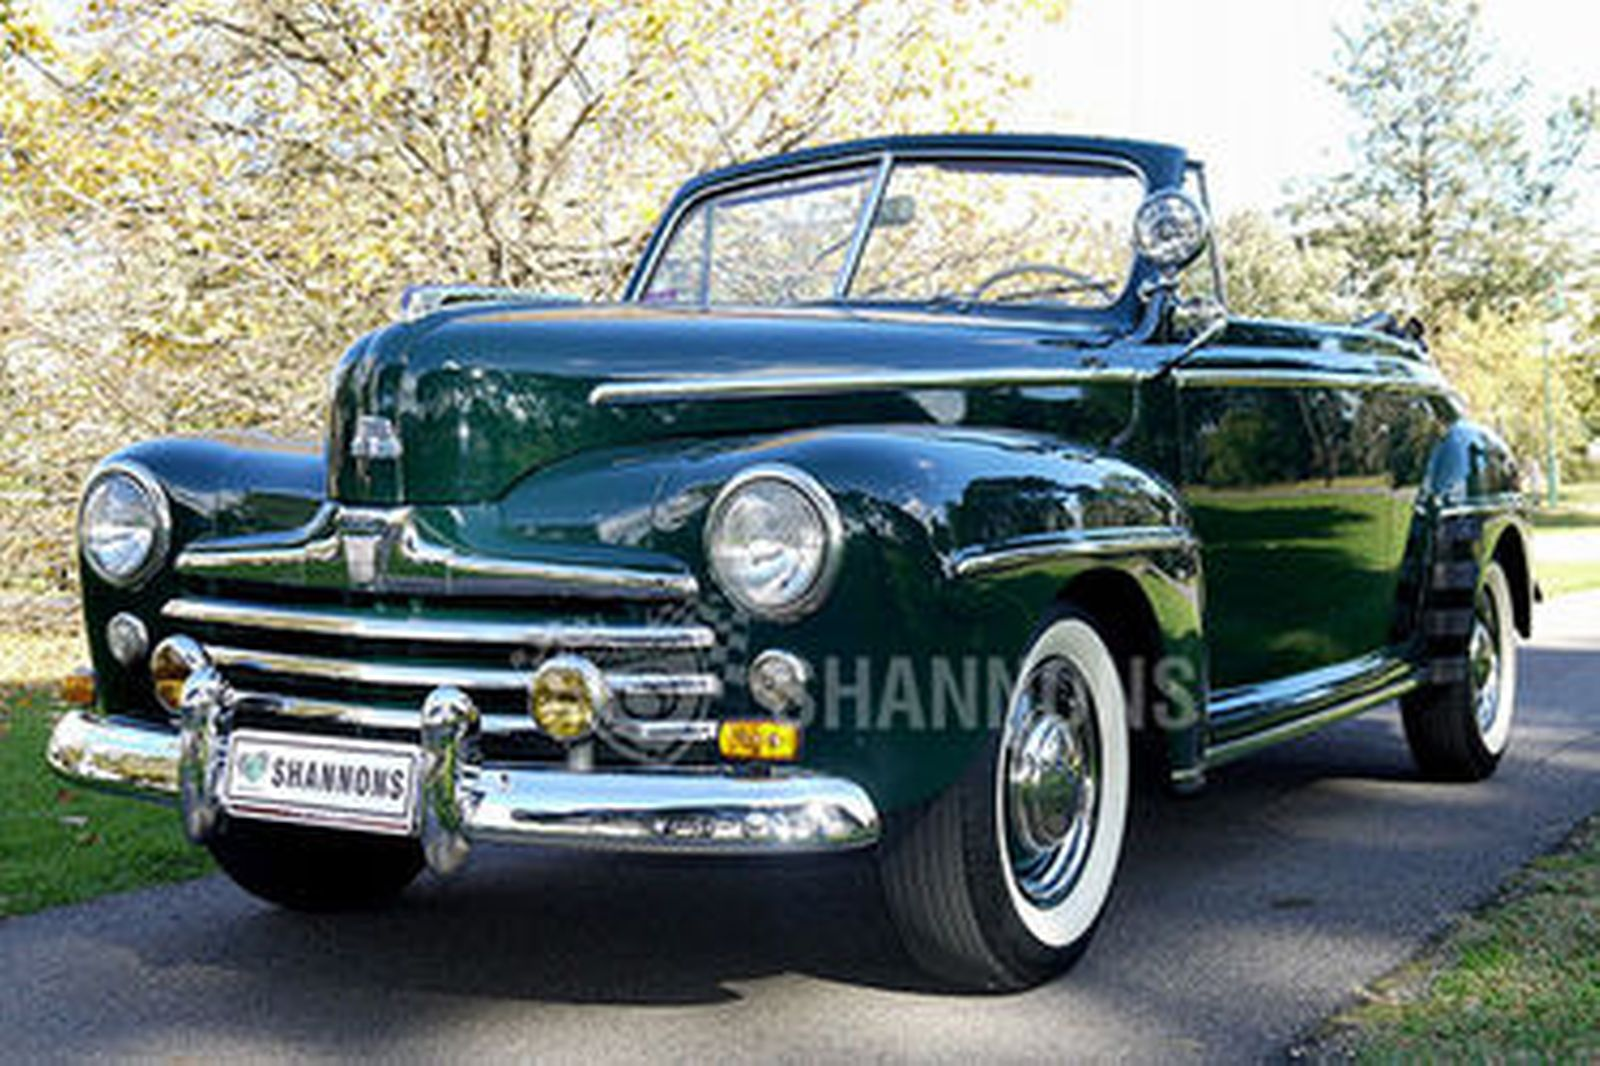 Ford Deluxe Convertible Lhd Auctions Lot 22 Shannons 1948 Mustang Coupe